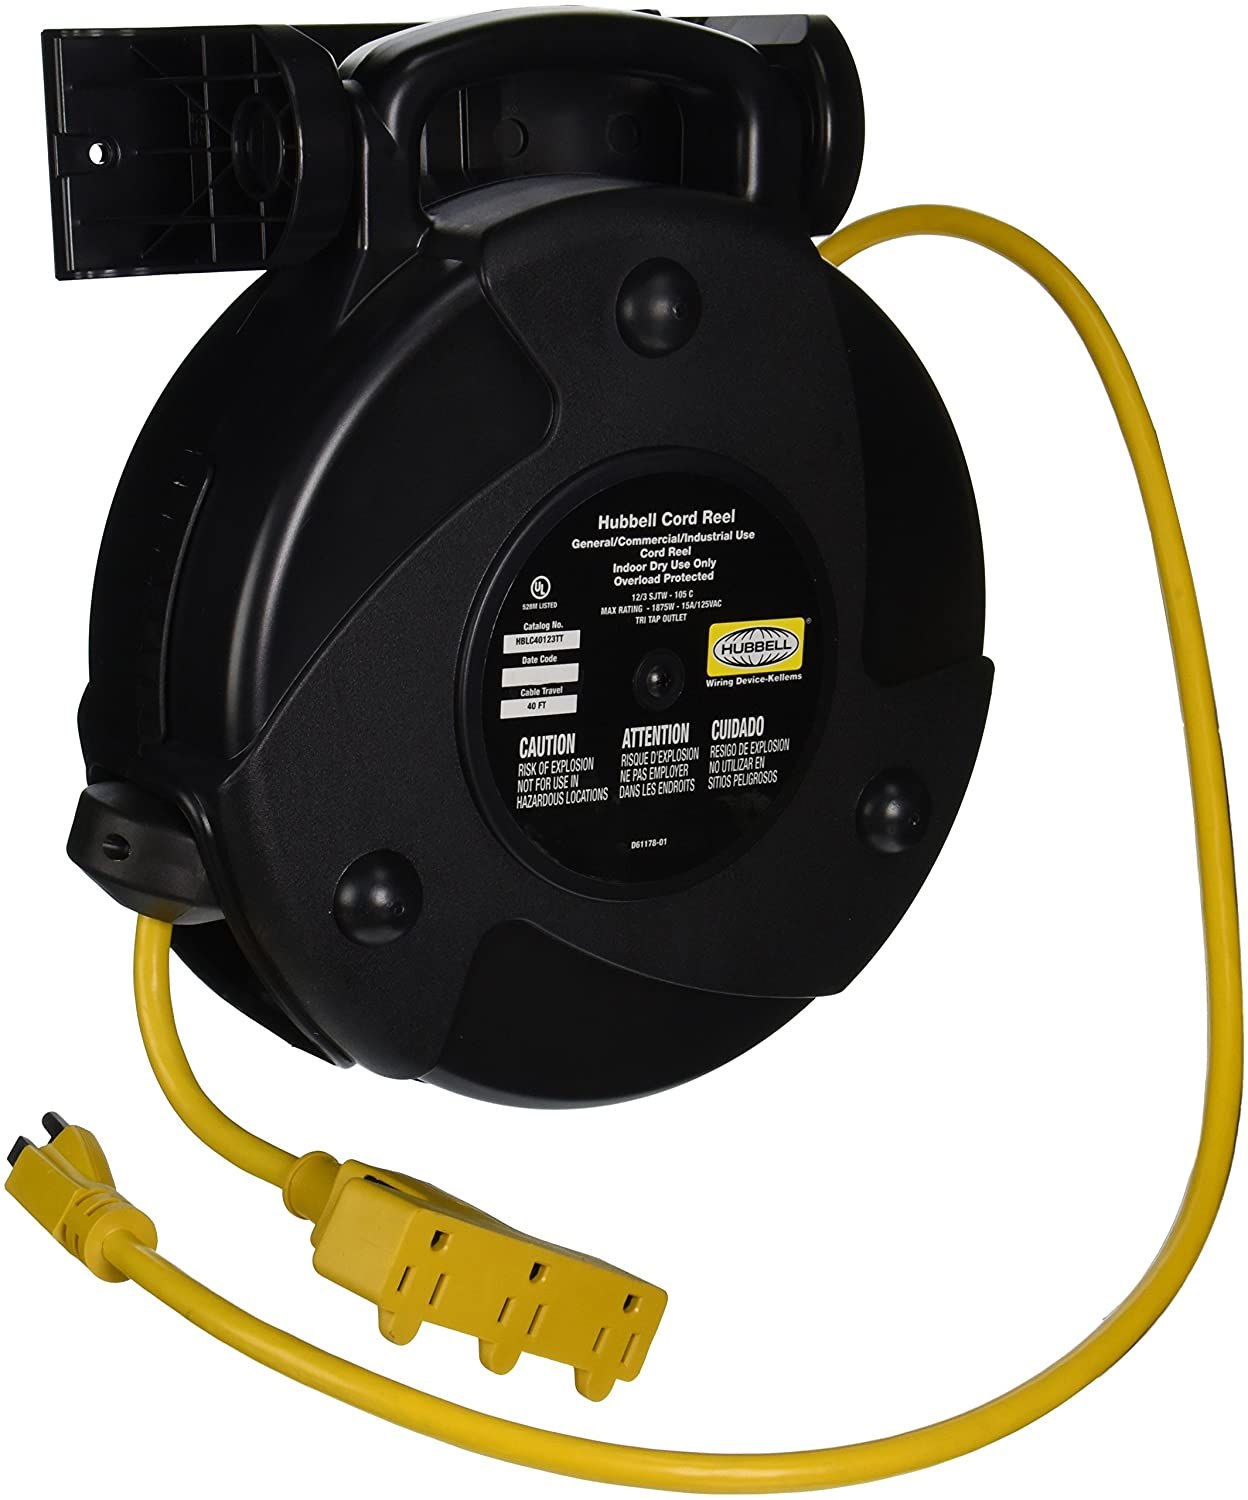 Hubbell Wiring Systems Hblc40123tt Commercial Cord Reel With Triple And Industrial Tap Outlet 40 Cable Length 12 3 Sjtw Type 1875w 15 Amp 125vac